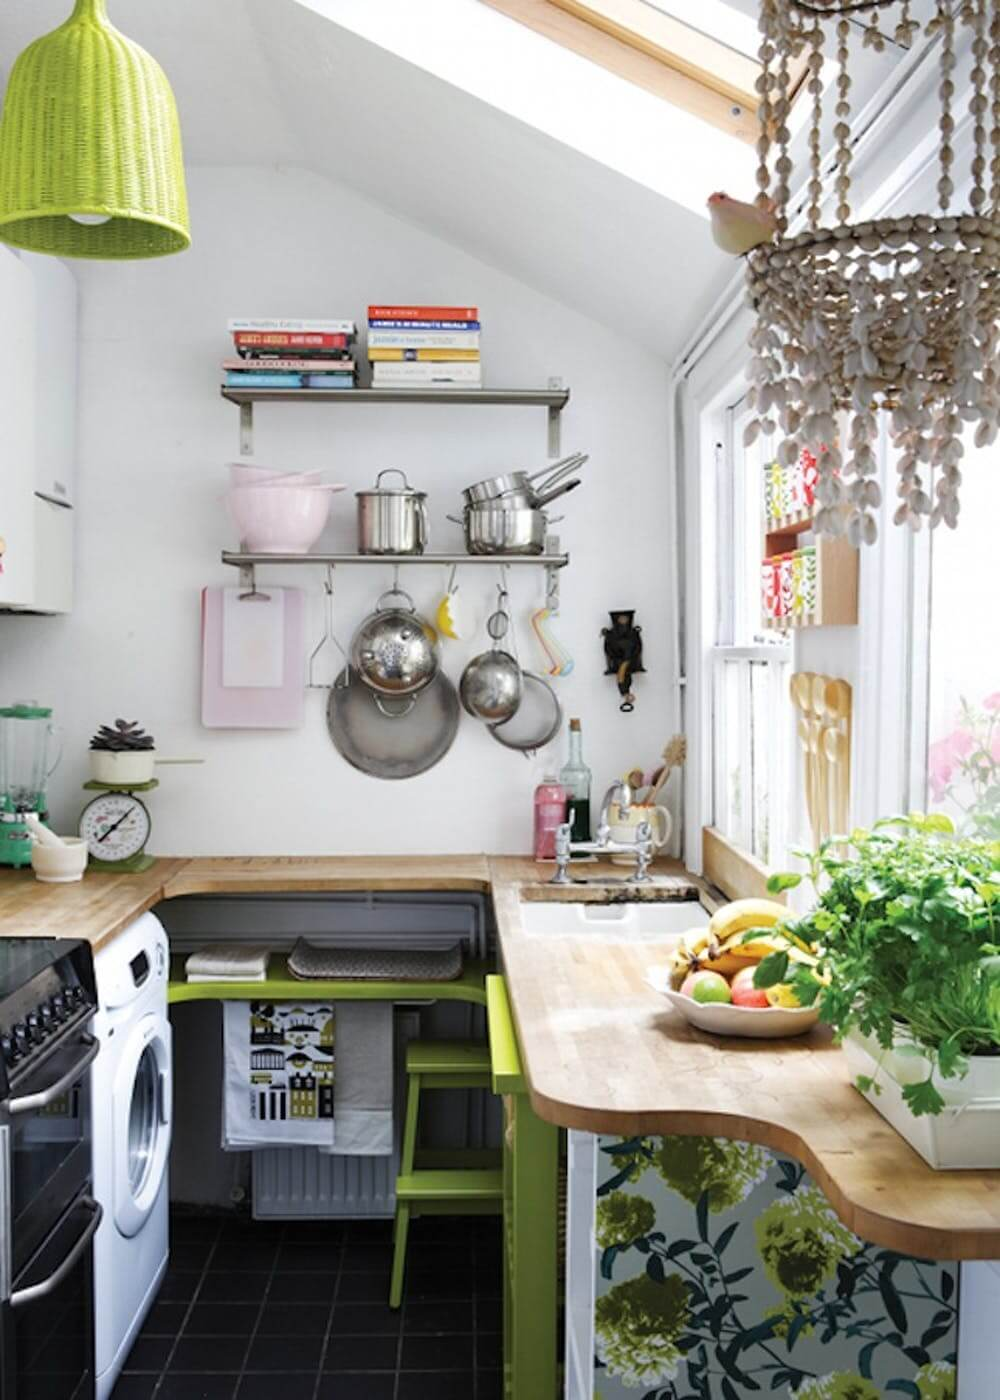 Small Kitchen Design Idea with Open Shelves